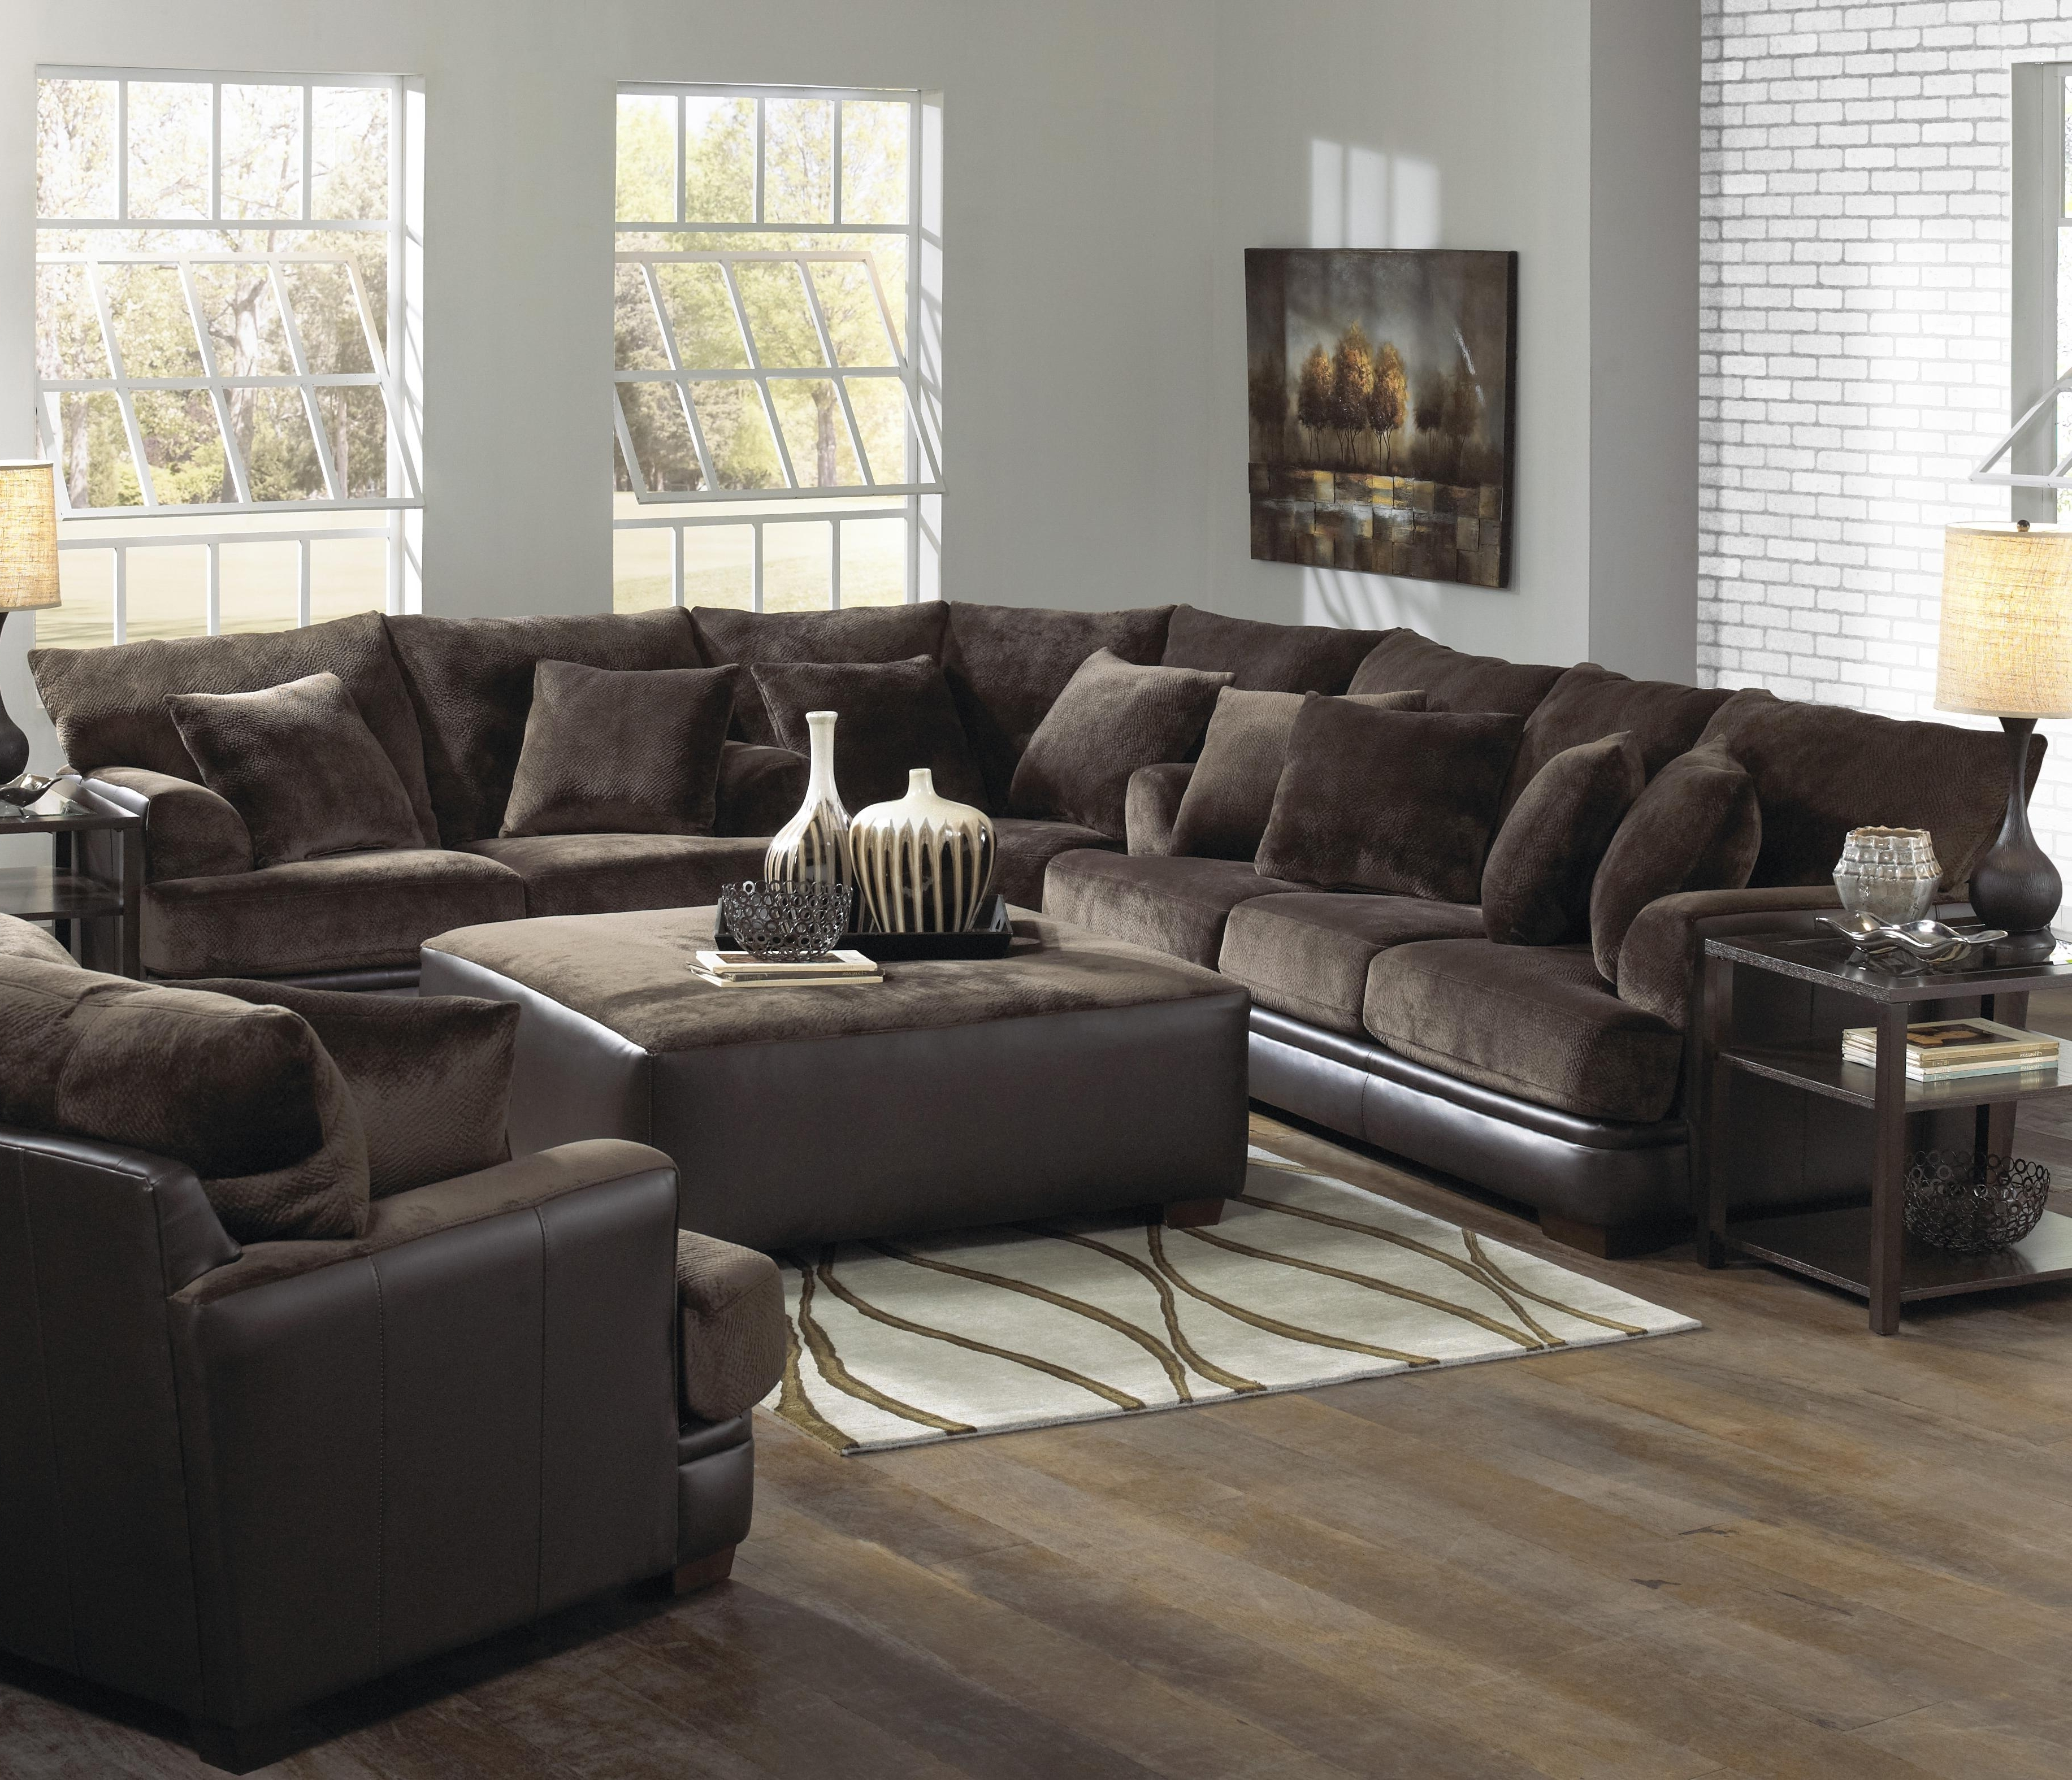 Wide Sectional Sofas Regarding Preferred Big Sofas Wide Seat Sectional Small U Shaped Sectional Top Rated (View 13 of 15)